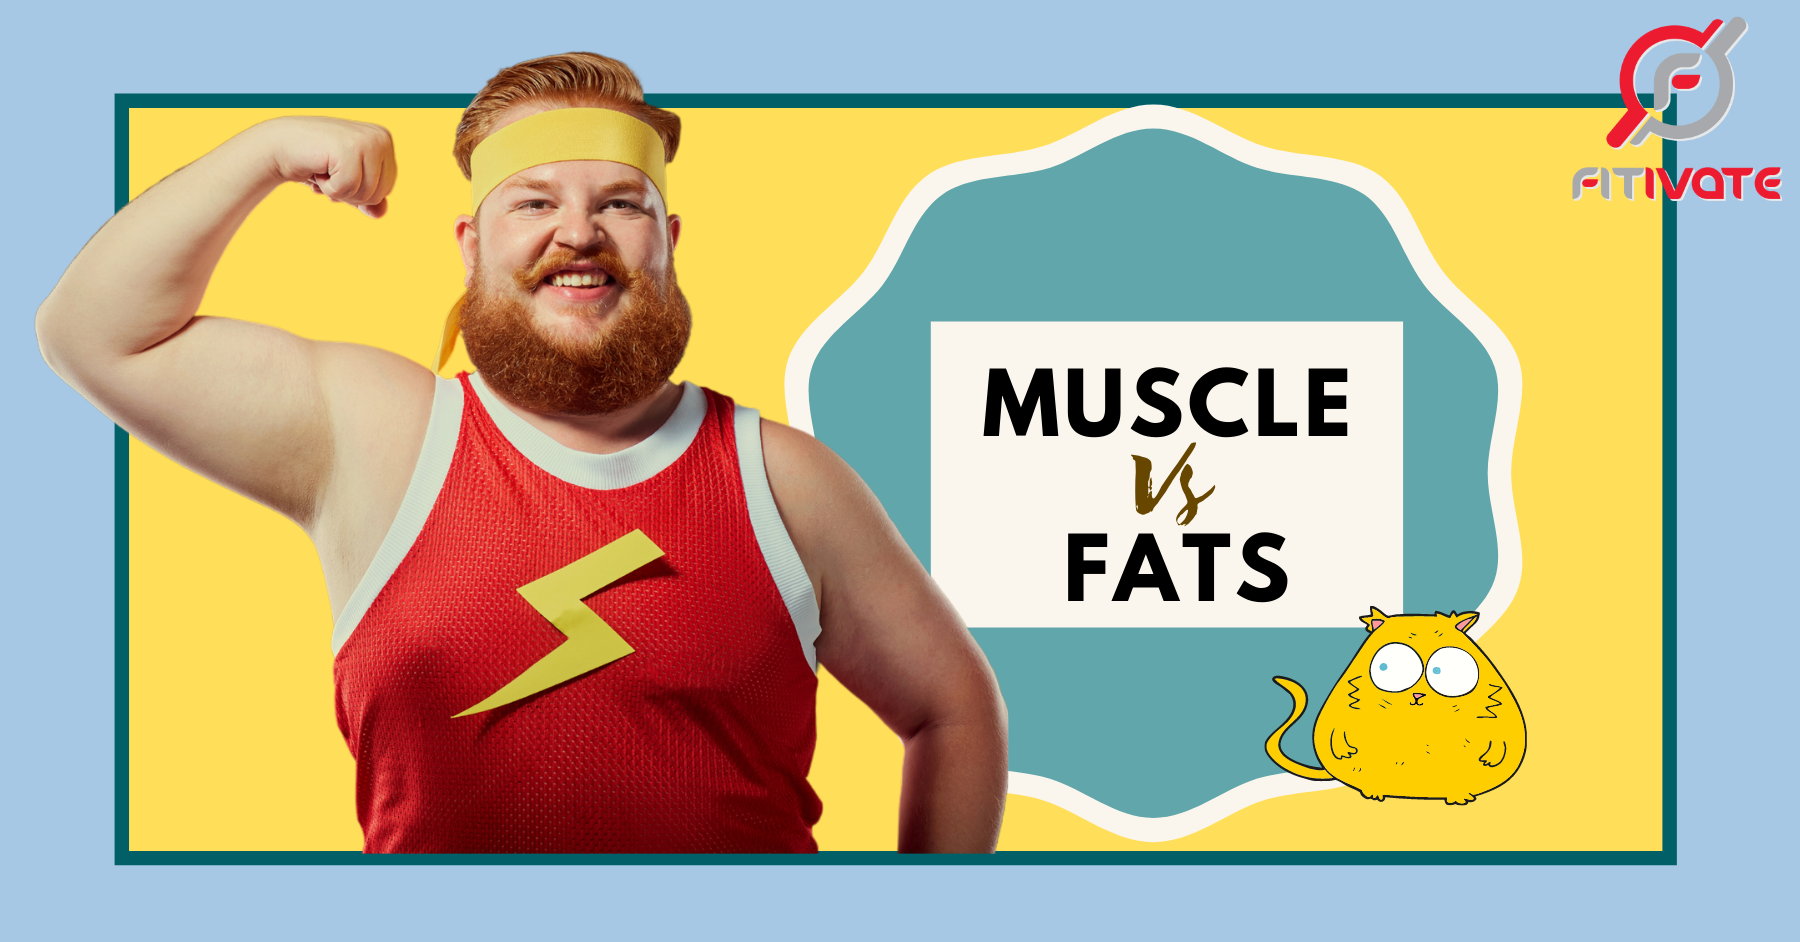 muscles and fats, muscles vs fats